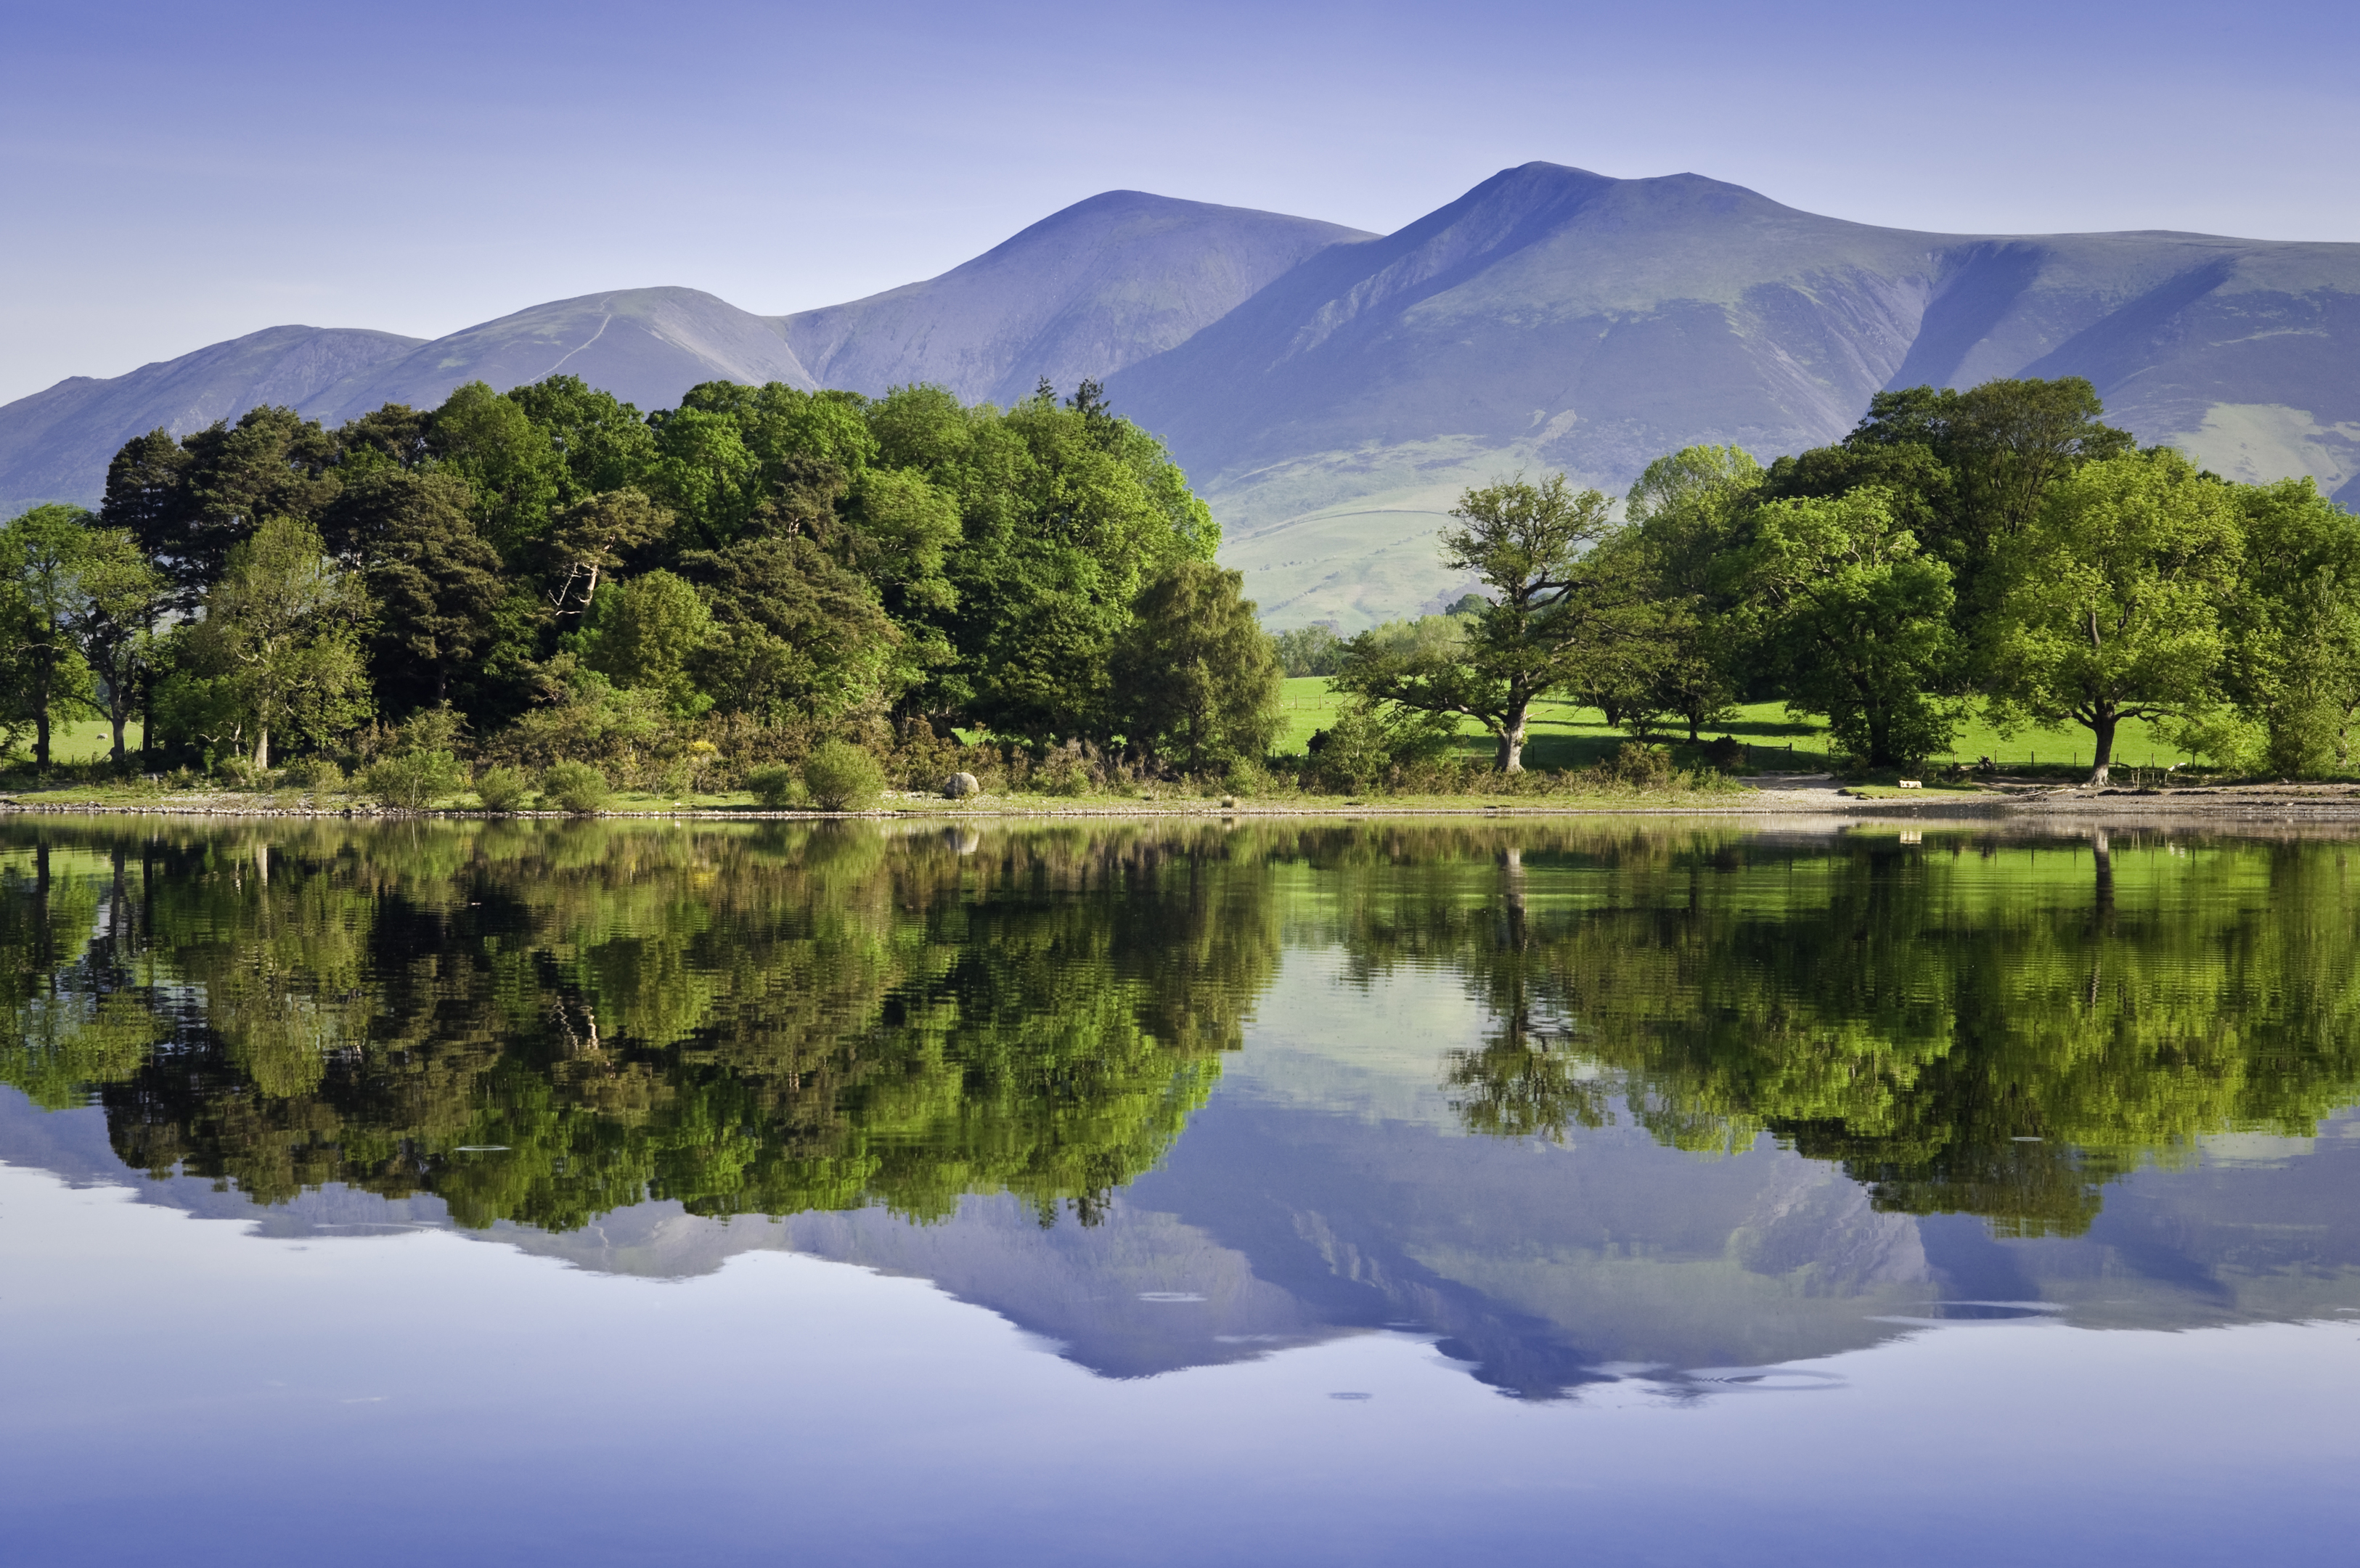 Derwent Water in the Lake District (Getty)